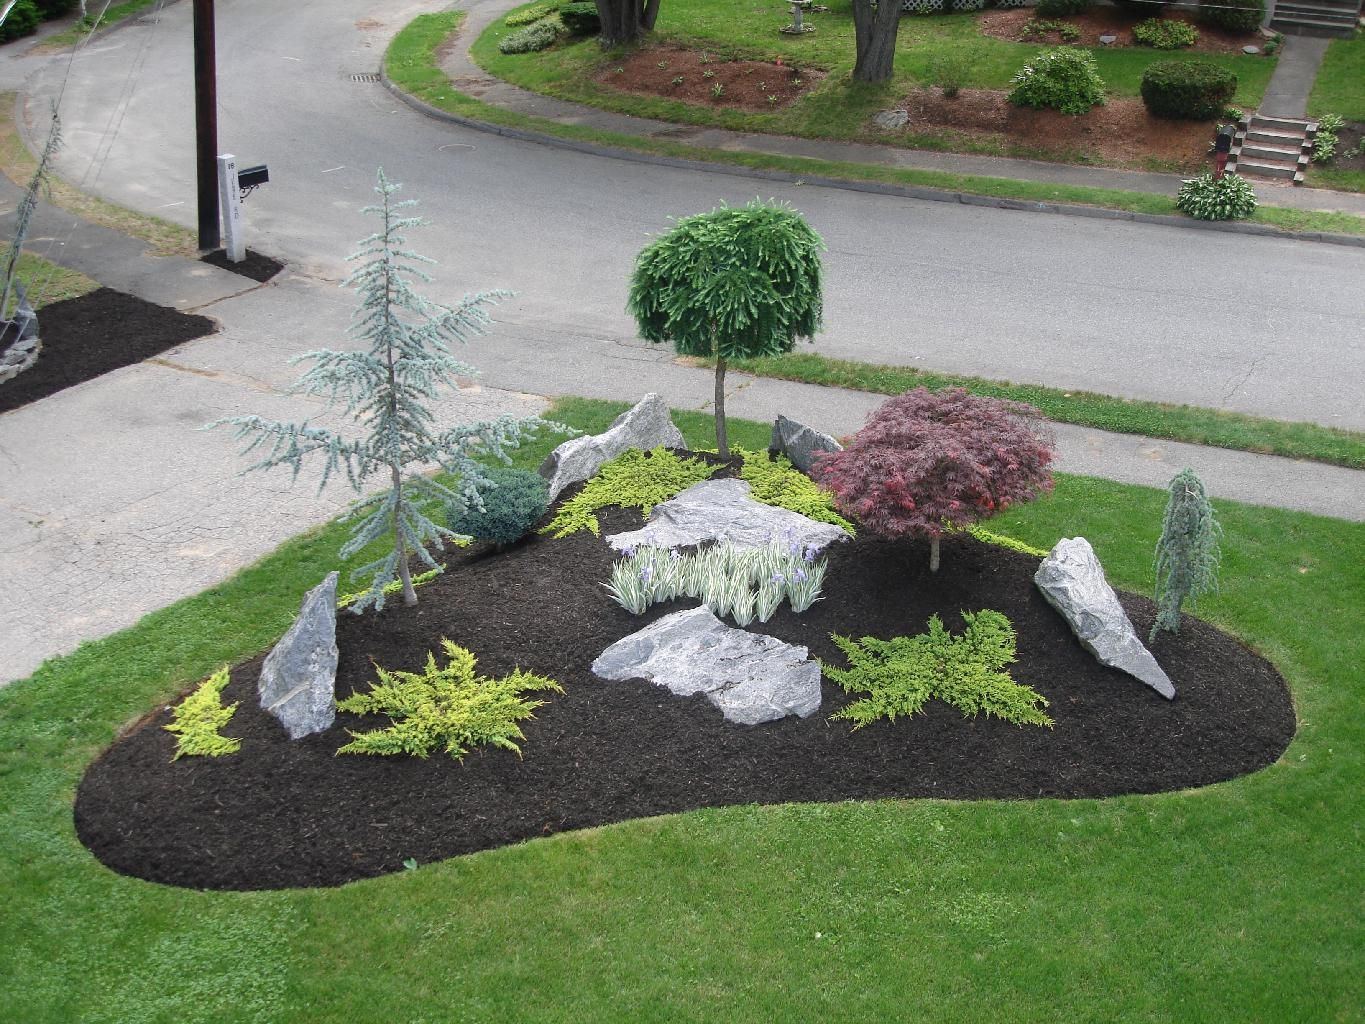 Simple landscape designs with rock beds google search for Design landscape garden